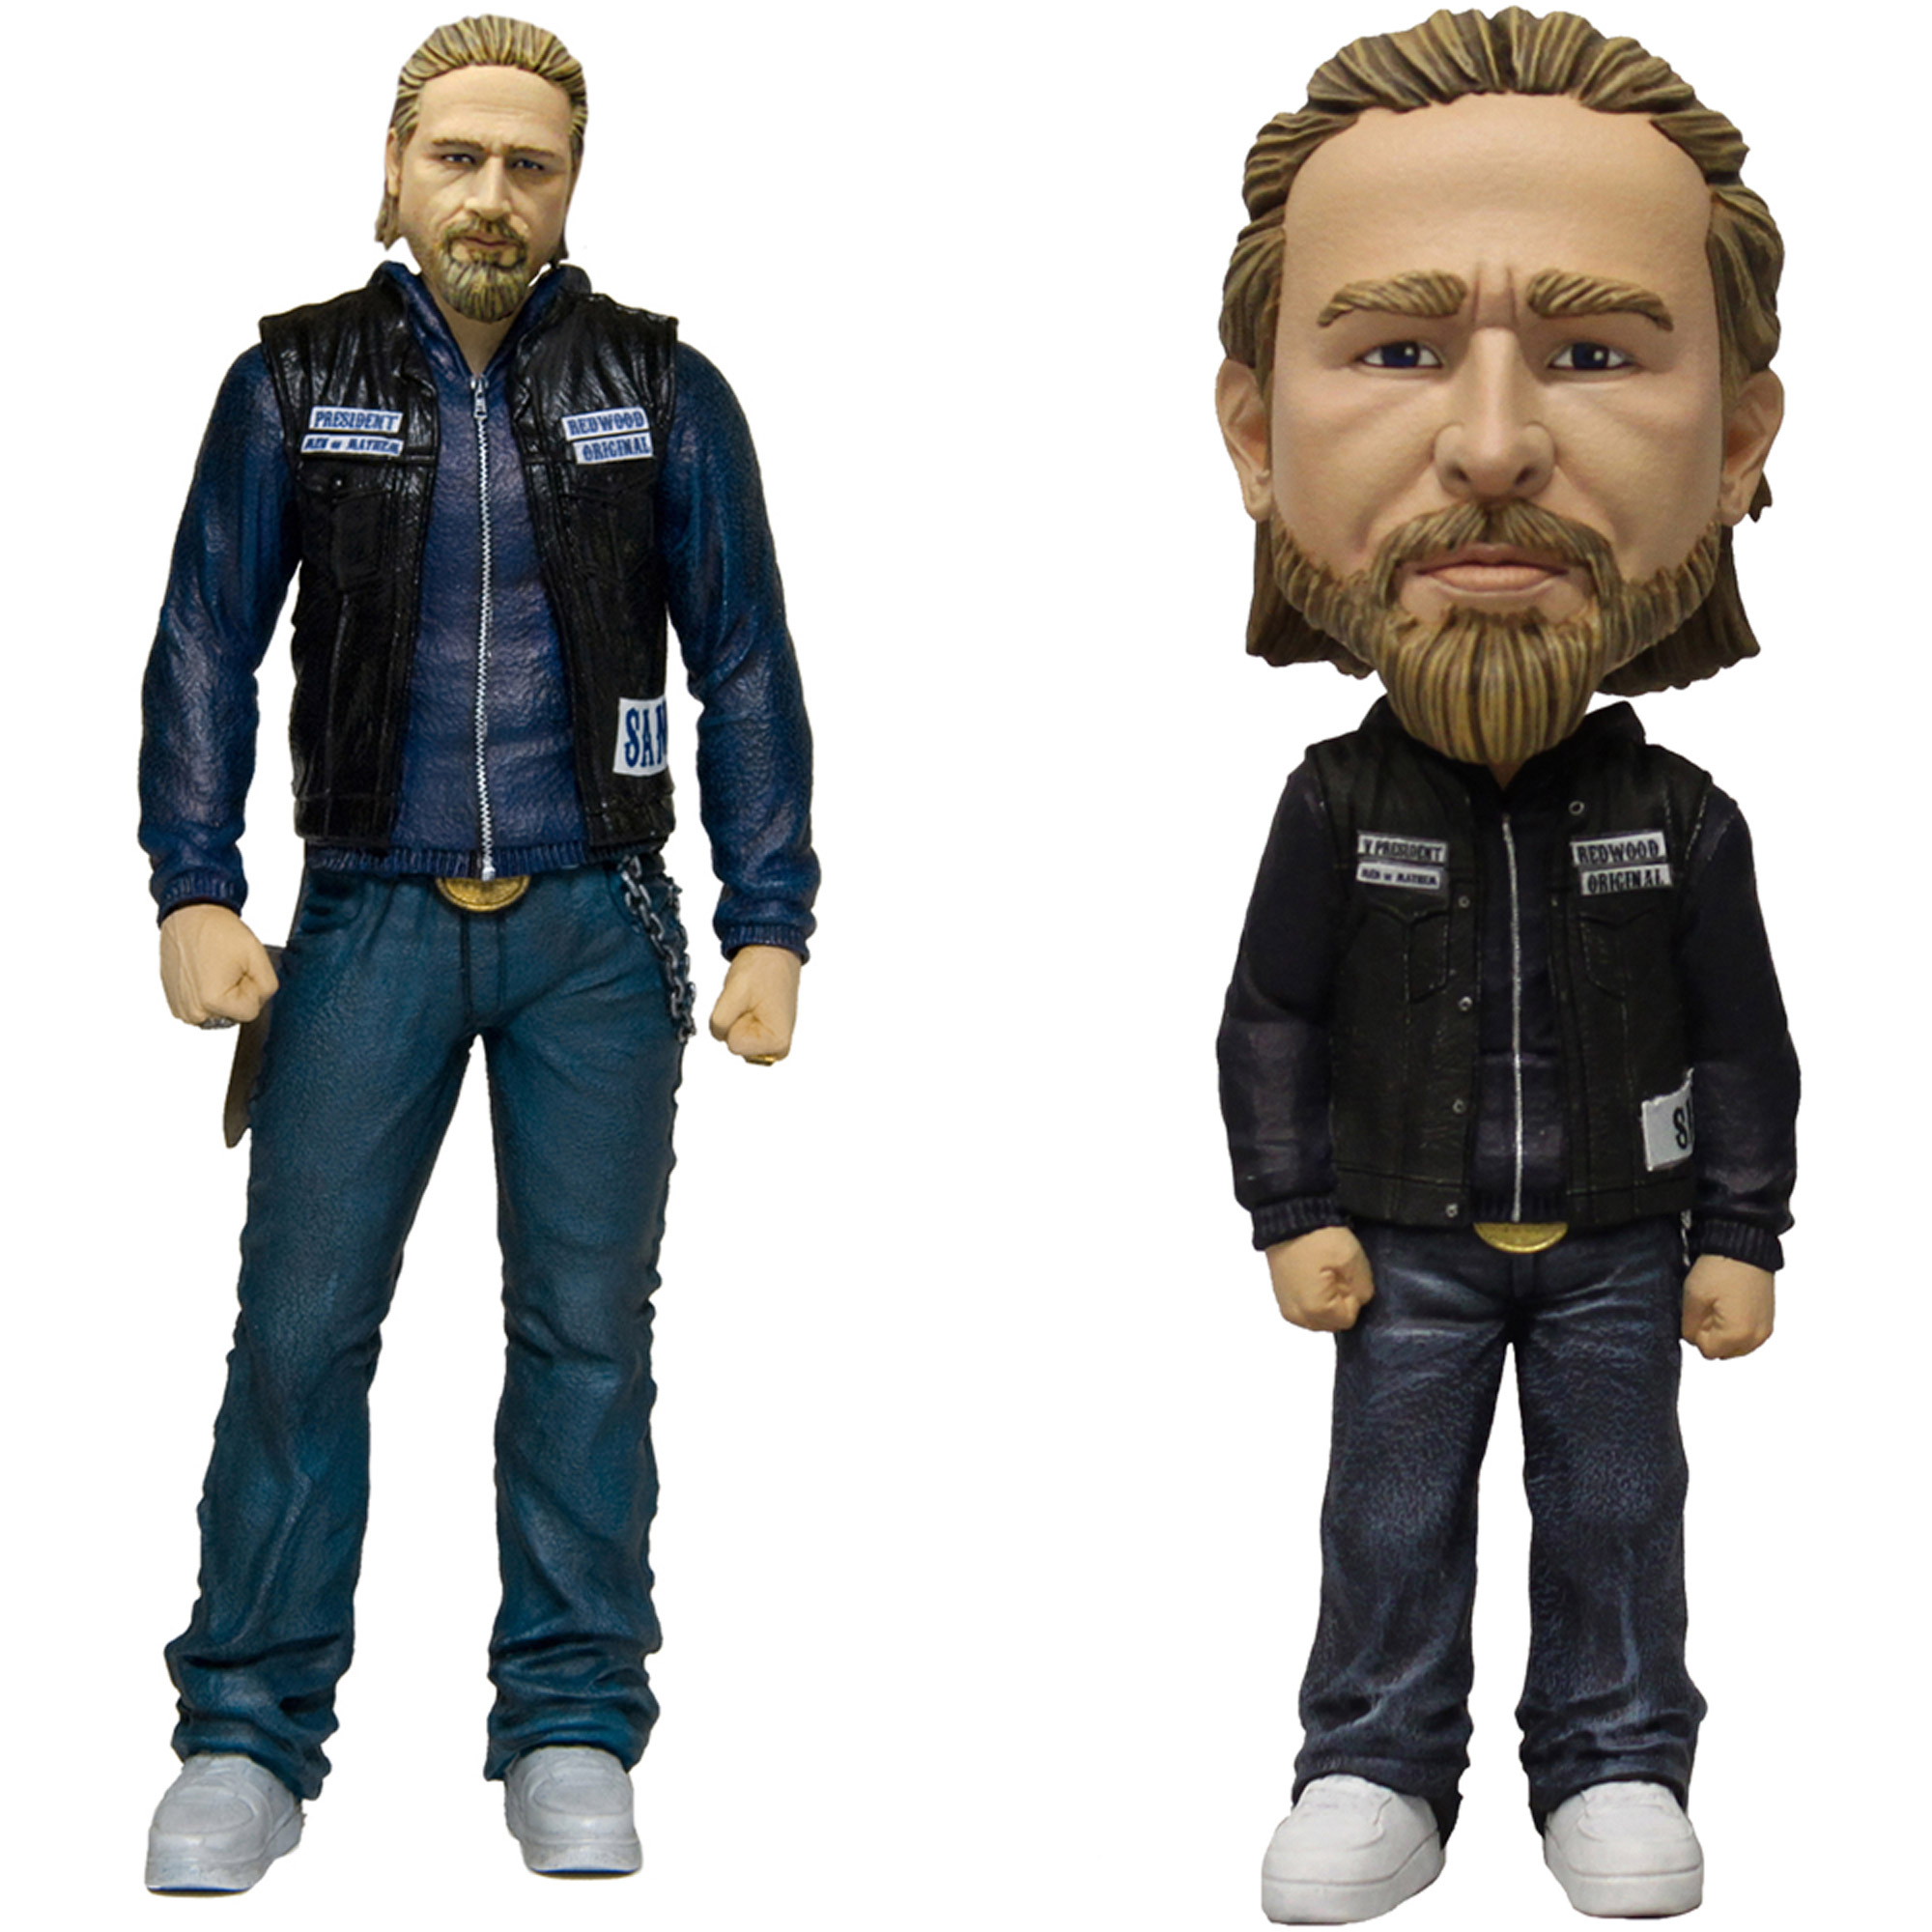 "Mezco Toys Sons of Anarchy: Jax Action Figure and Jax 6"" Bobblehead Bundle"